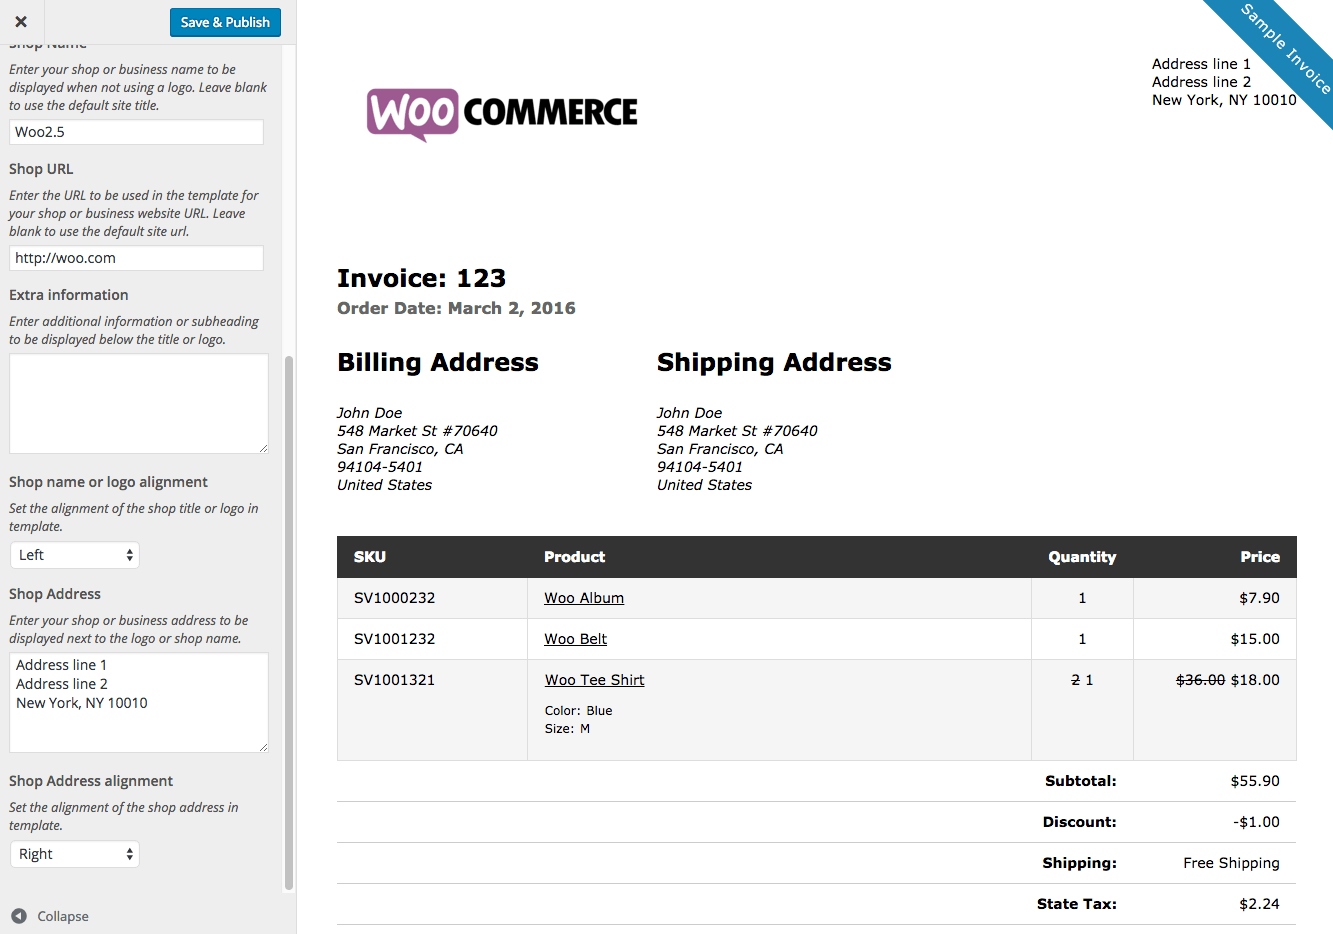 Centralasianshepherdus  Remarkable Print Invoices Amp Packing Lists  Woocommerce With Entrancing Woocommerce Print Invoices  Packing Lists Customizer With Beautiful Invoice Stamp Also Automotive Invoice In Addition How To Write A Invoice And Carpet Cleaning Invoice As Well As Bmw Invoice Price Additionally Fedex Invoice Payment From Woocommercecom With Centralasianshepherdus  Entrancing Print Invoices Amp Packing Lists  Woocommerce With Beautiful Woocommerce Print Invoices  Packing Lists Customizer And Remarkable Invoice Stamp Also Automotive Invoice In Addition How To Write A Invoice From Woocommercecom